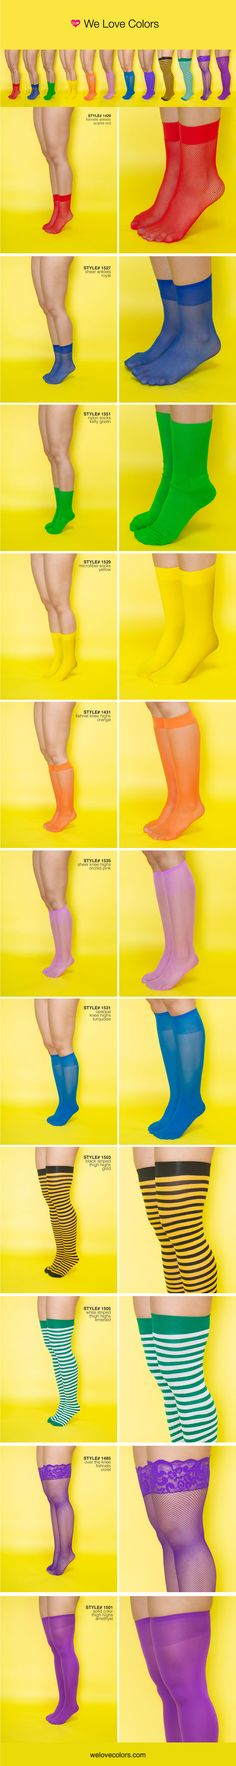 Socks in all the colors of the rainbow and more!!